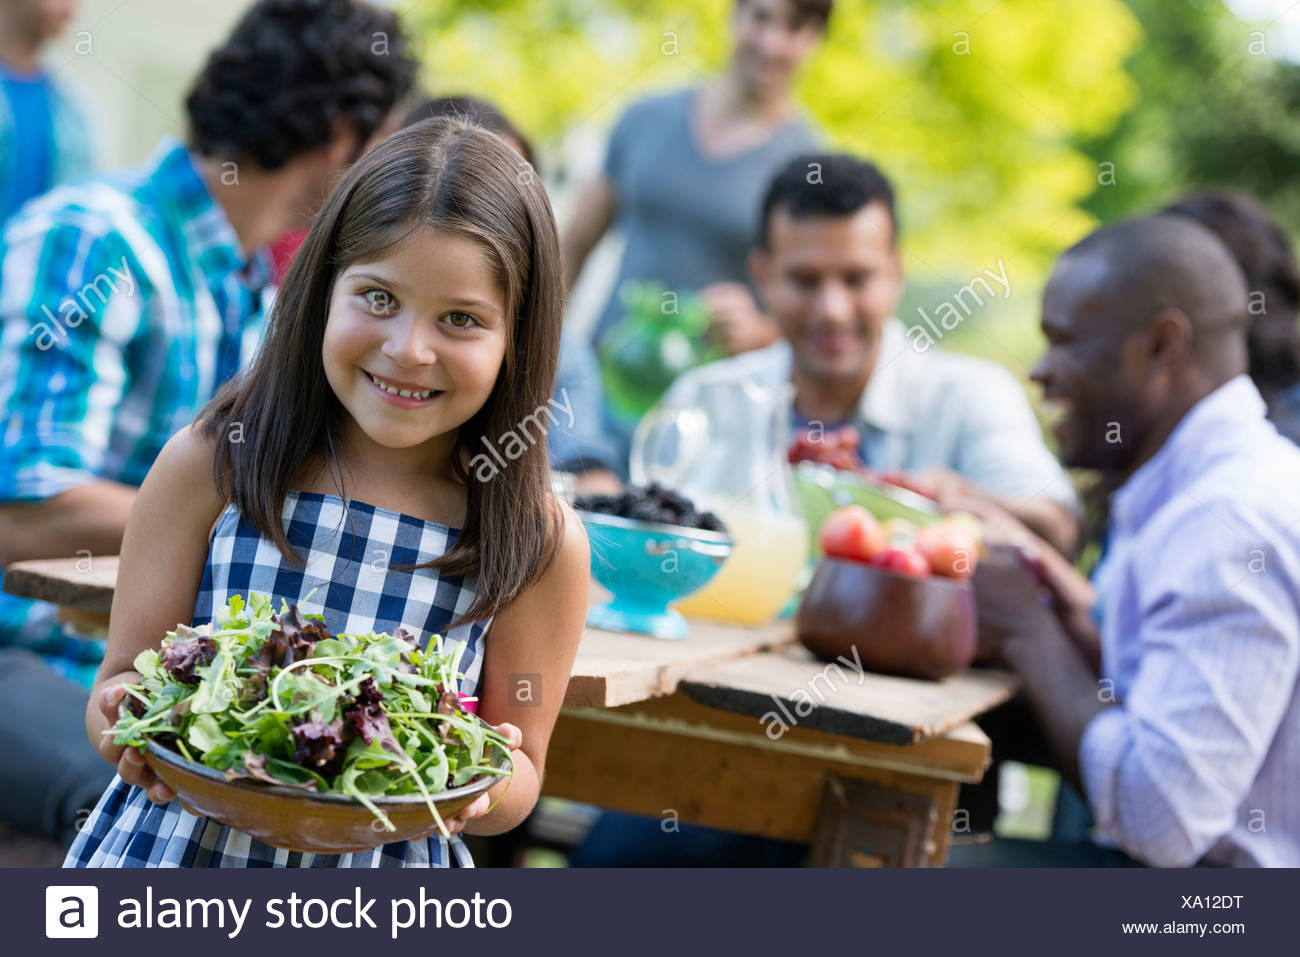 Adults and children around a table in a garden. A child holding a bowl of salad. - Stock Image